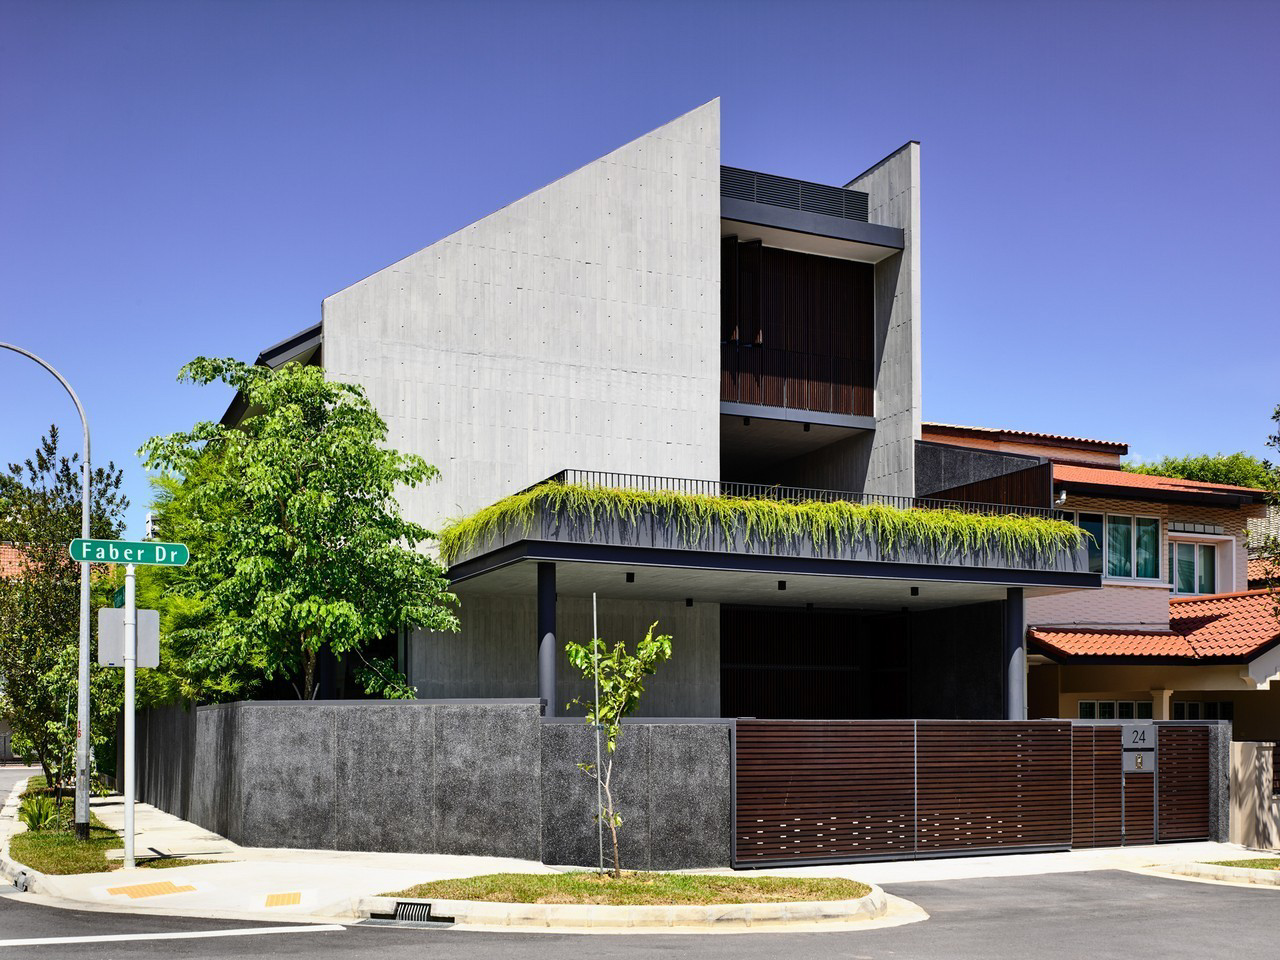 Cascading Courts Luxury House – Faber Drive, Singapore